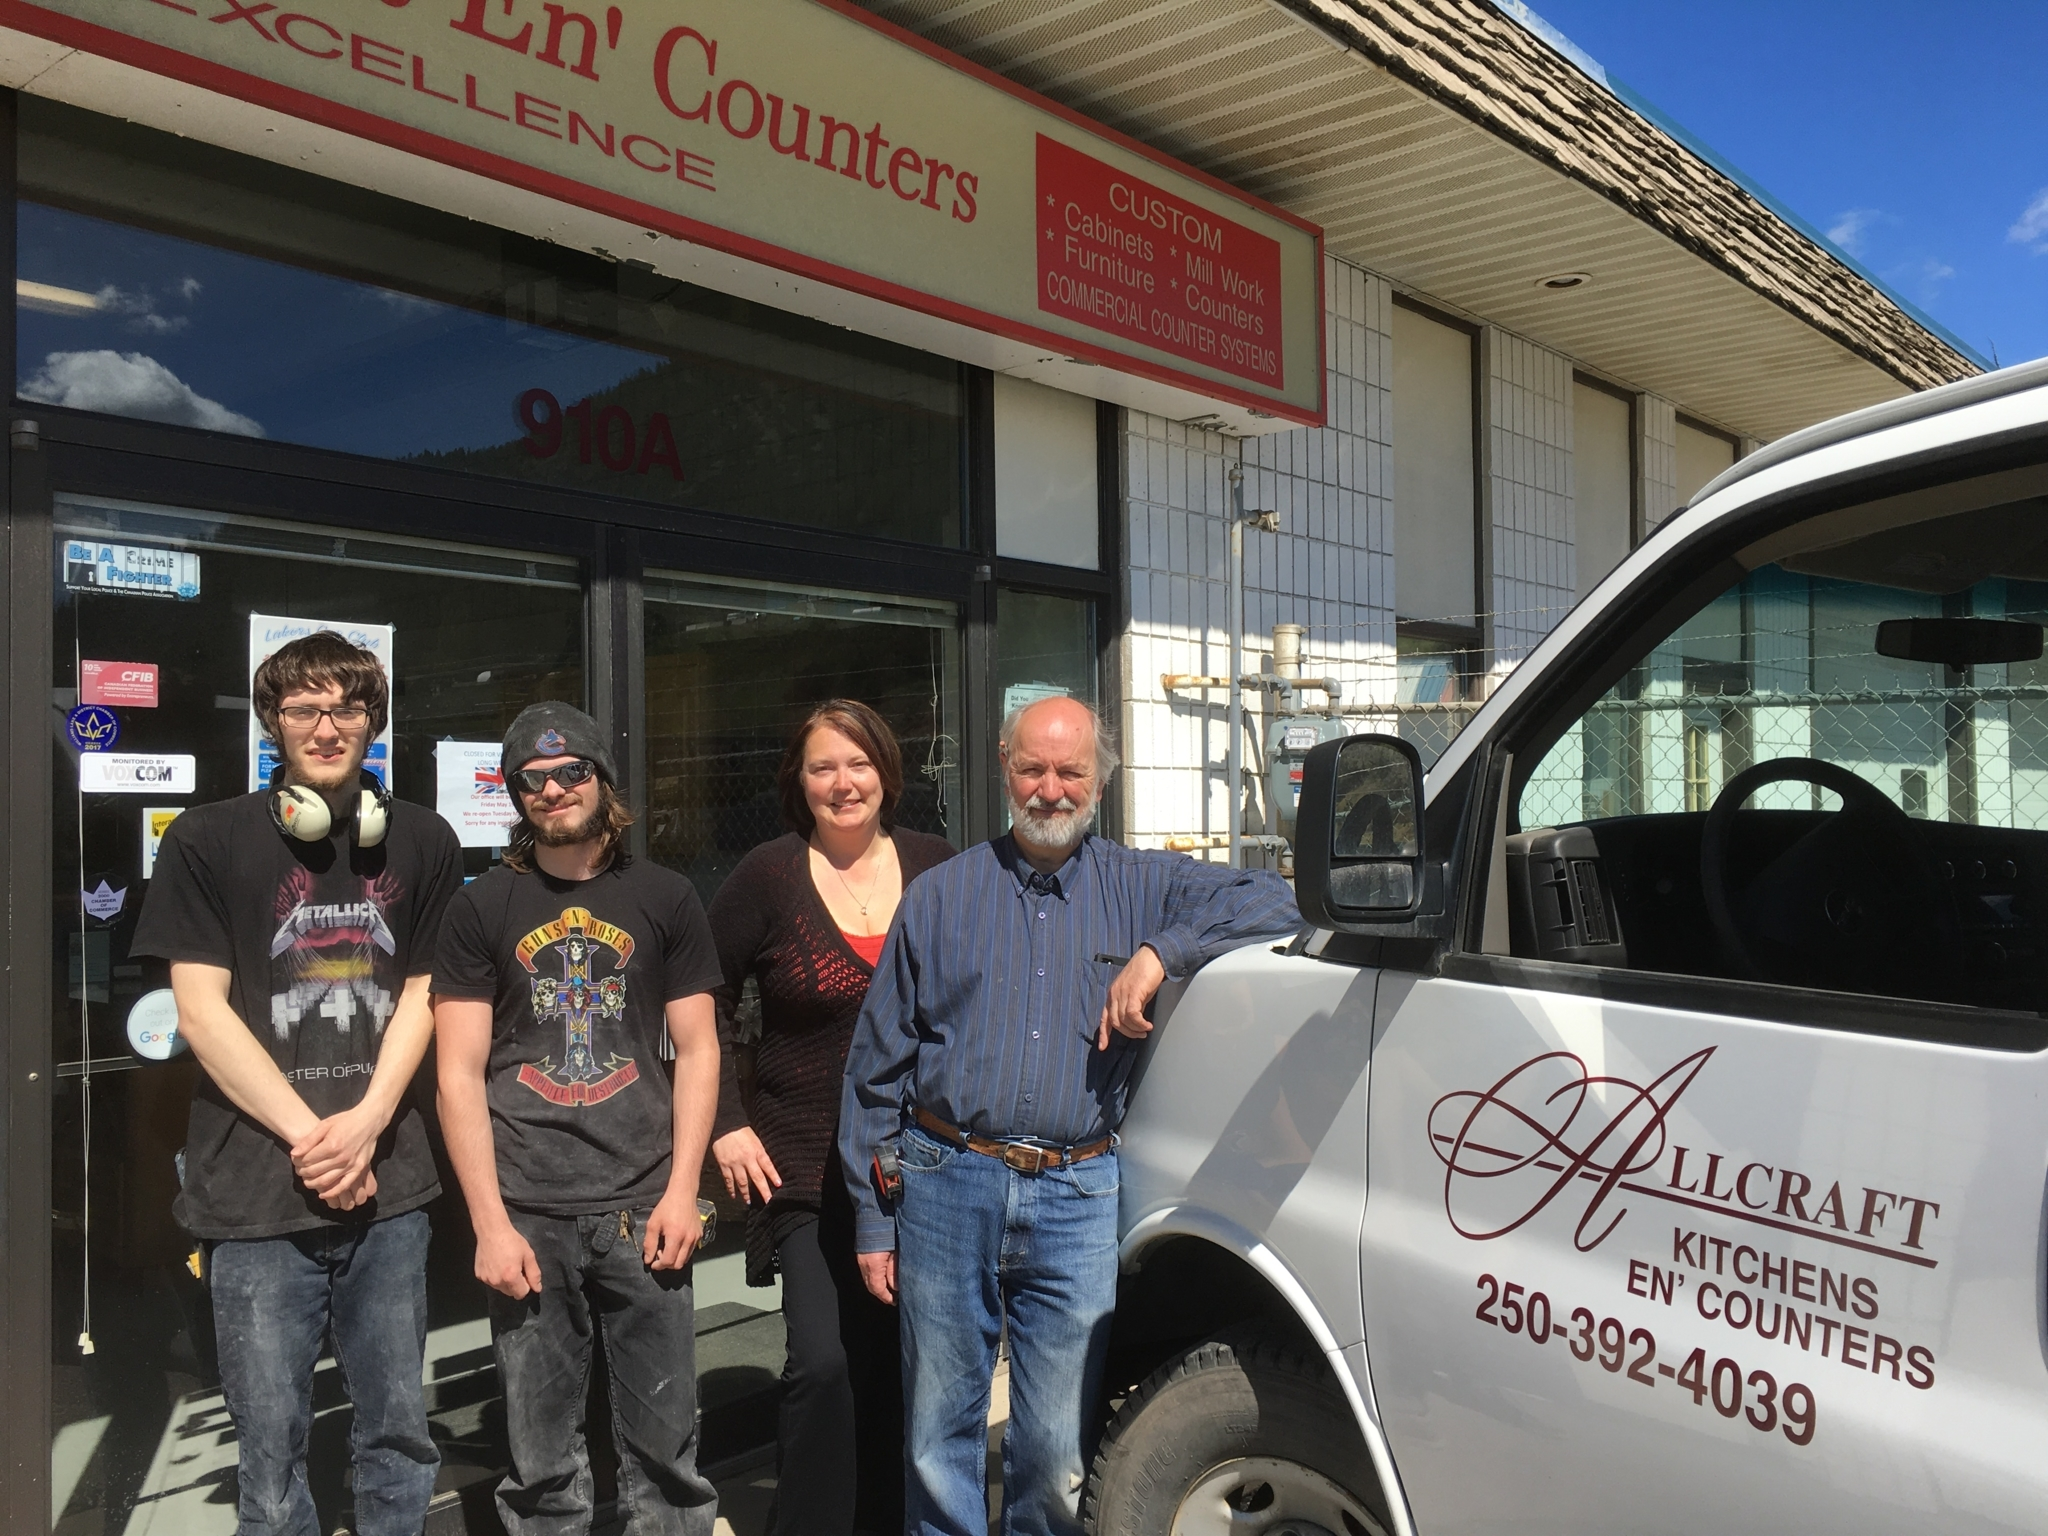 Allcraft Kitchens En' Counters in Williams Lake: the Team at Allcraft Kitchens